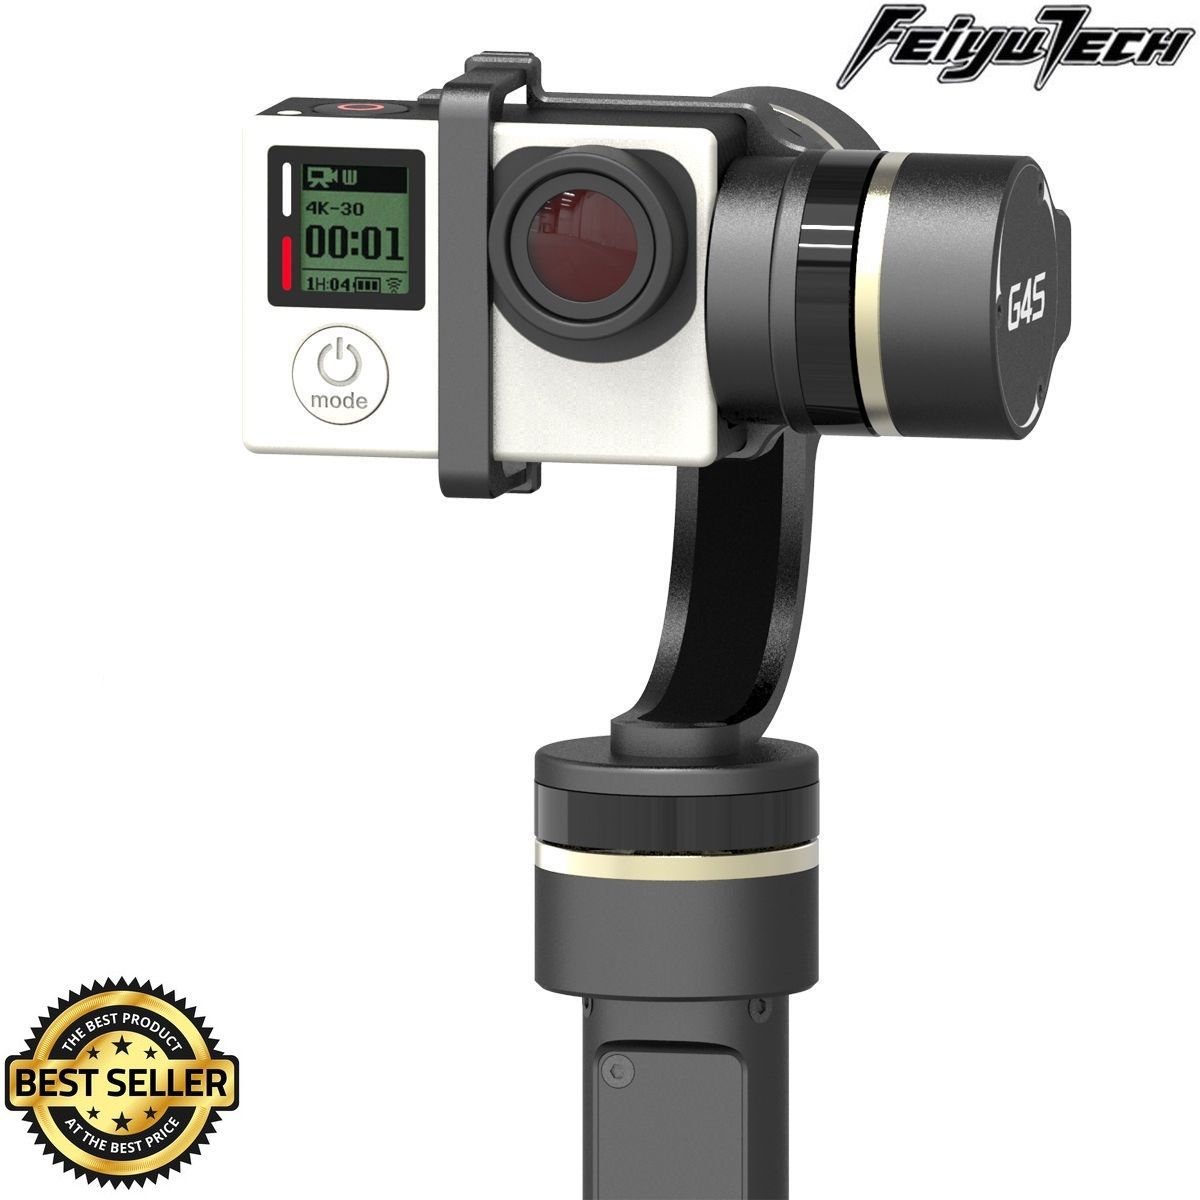 Feiyu Tech FY-G4S 3-Axis 360 Degree Handheld Steady Gimbal for GoPro Hero 3 3+ 4 TV59 feiyu tech fy g4s 3 axis 360 degree handheld steady gimbal for gopro hero 3 3 4 tv59